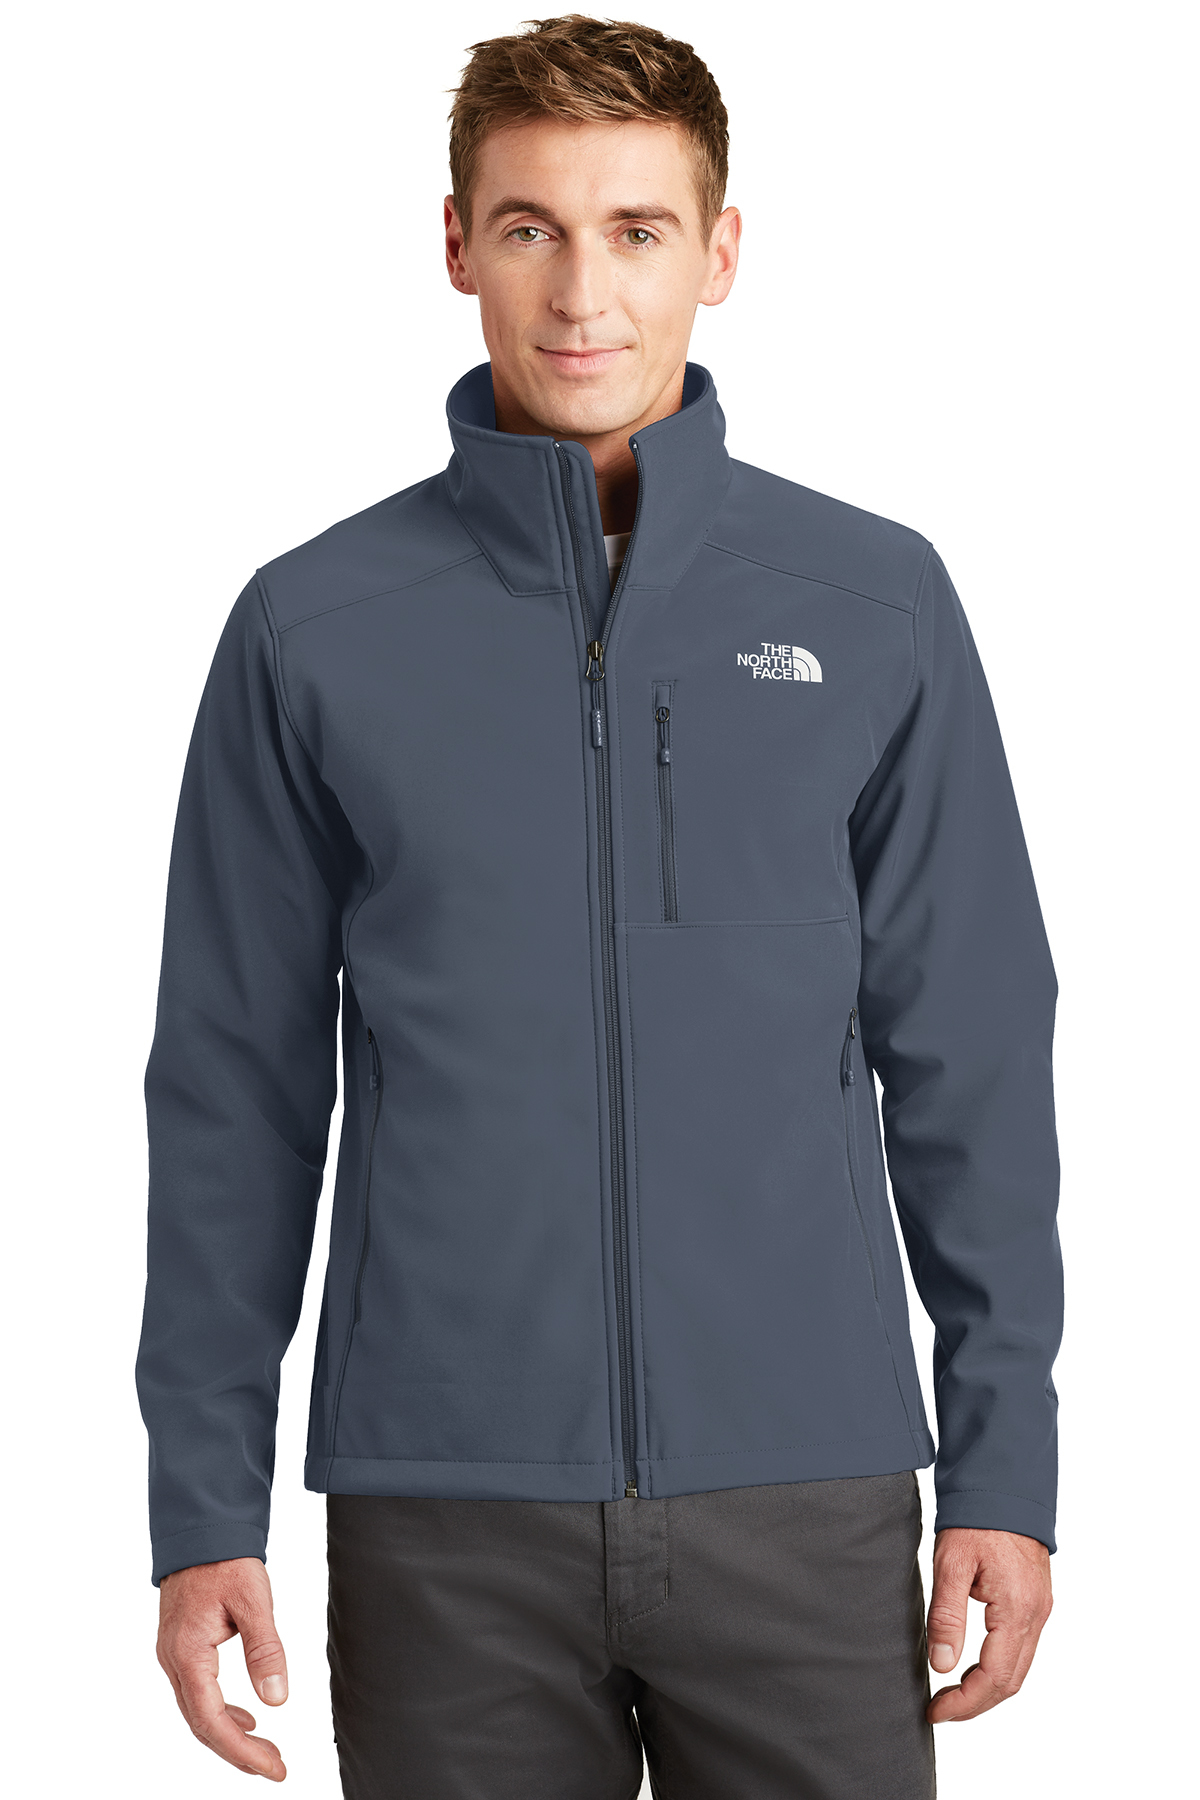 The North Face® NF0A3LGT - Men's Apex Barrier Soft Shell Jacket